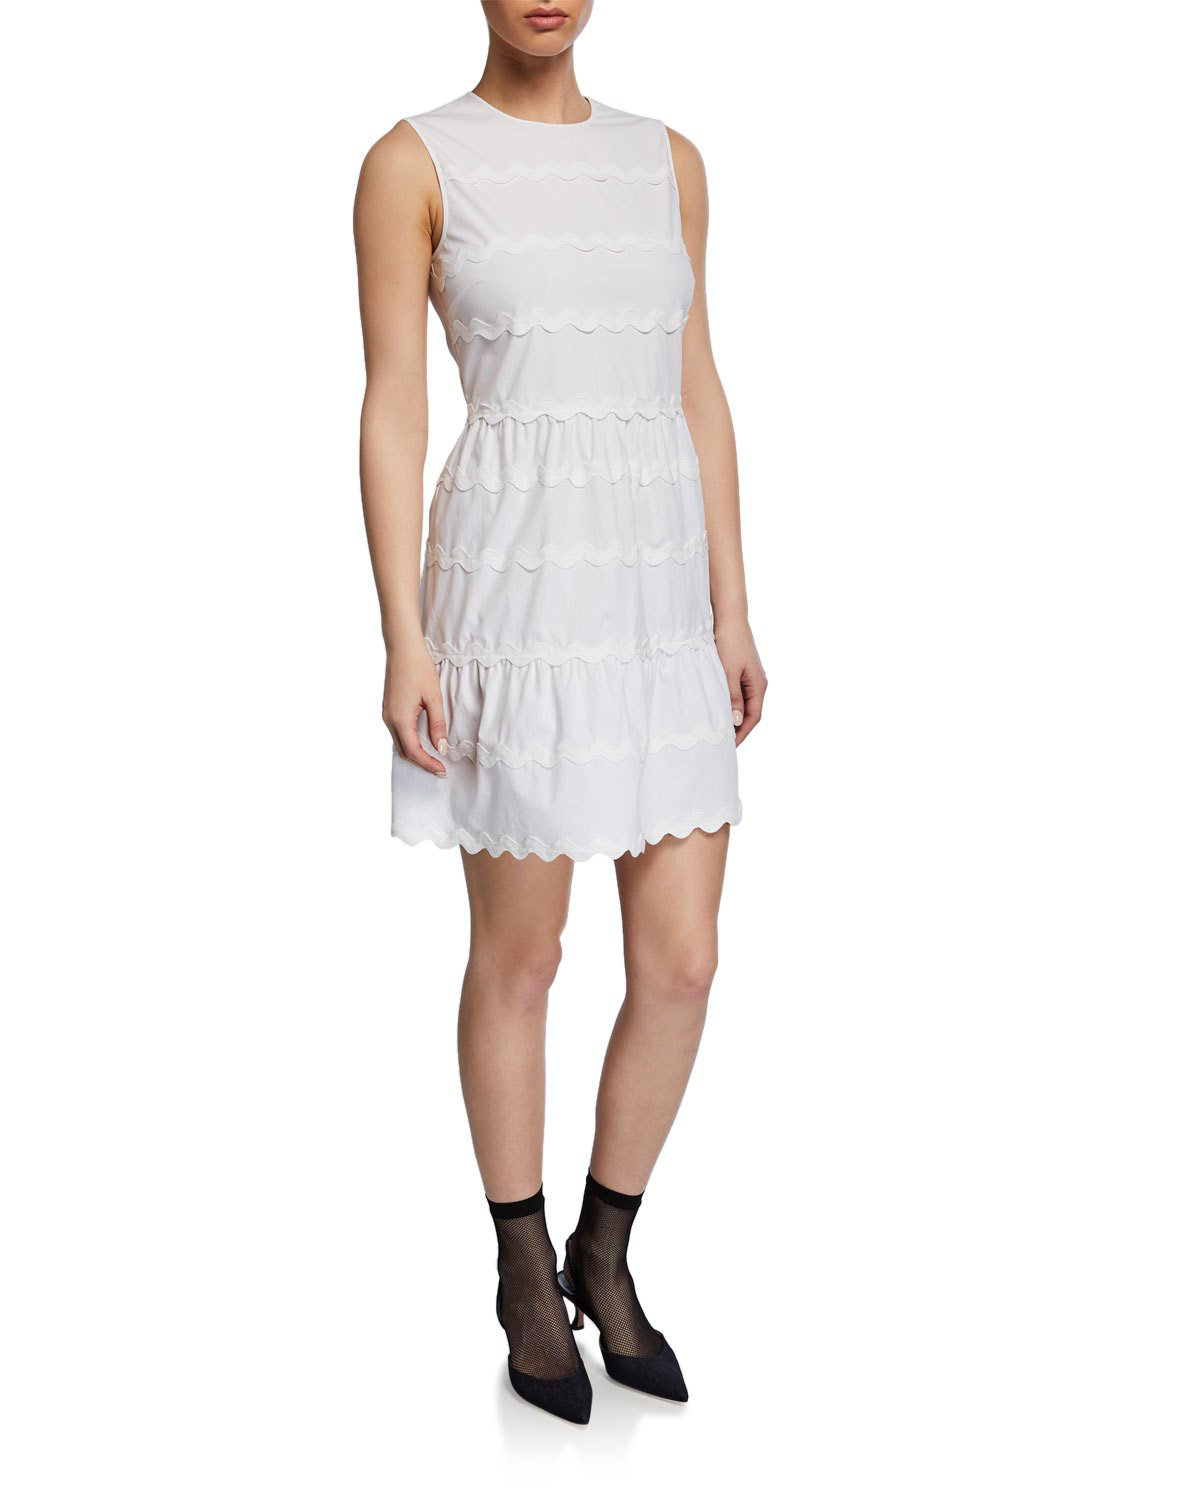 Red Valentino Sleeveless Scallop Cotton Dress In White